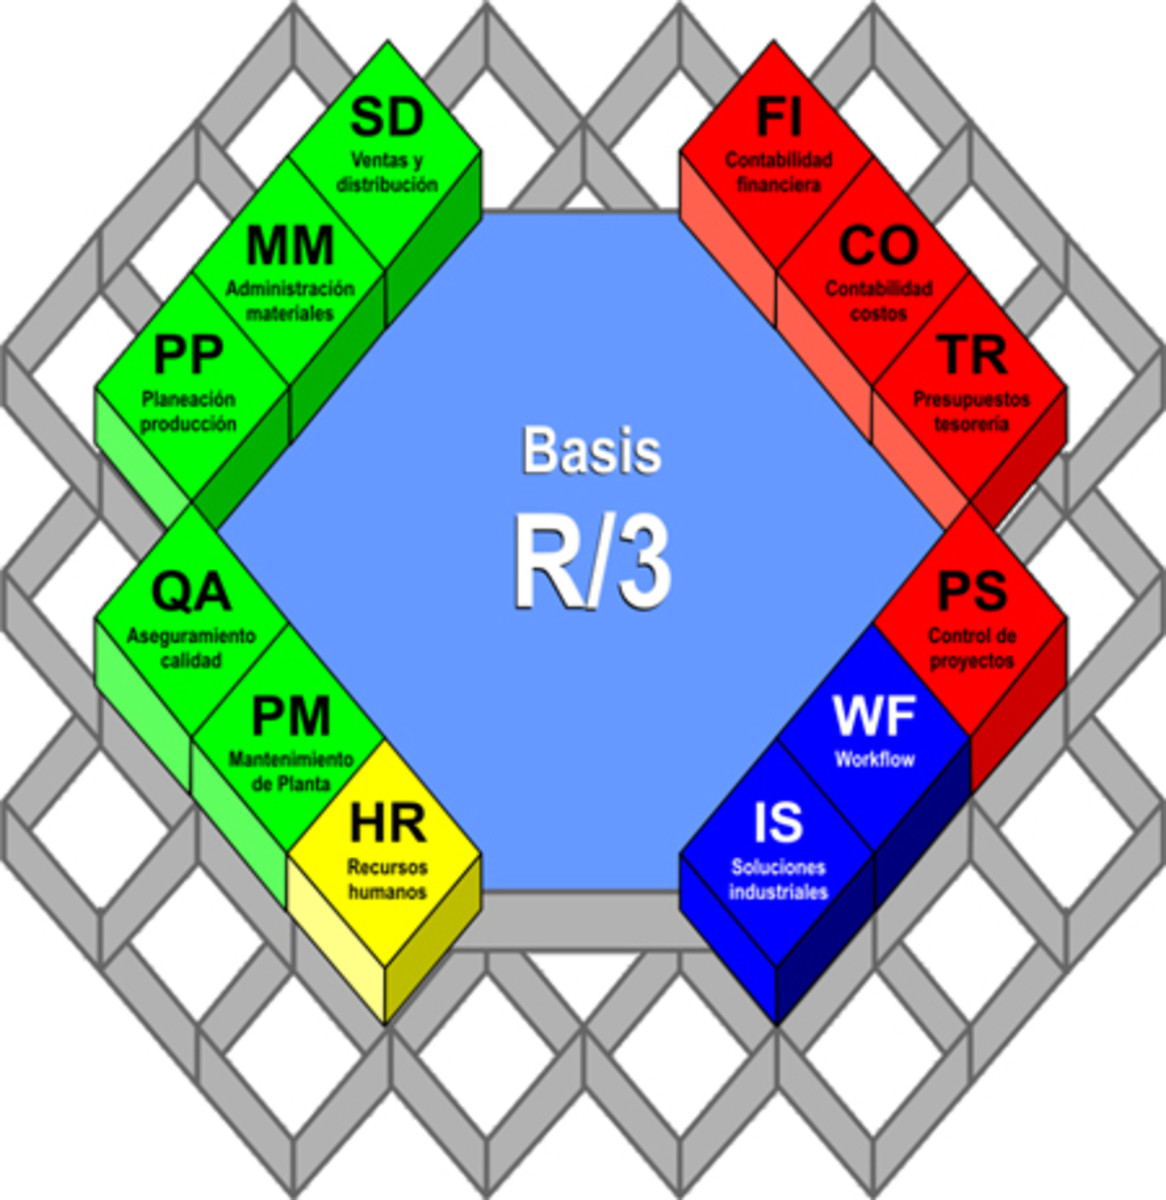 sap r 3 modules diagram nissan altima radio wiring what is the software system? | toughnickel